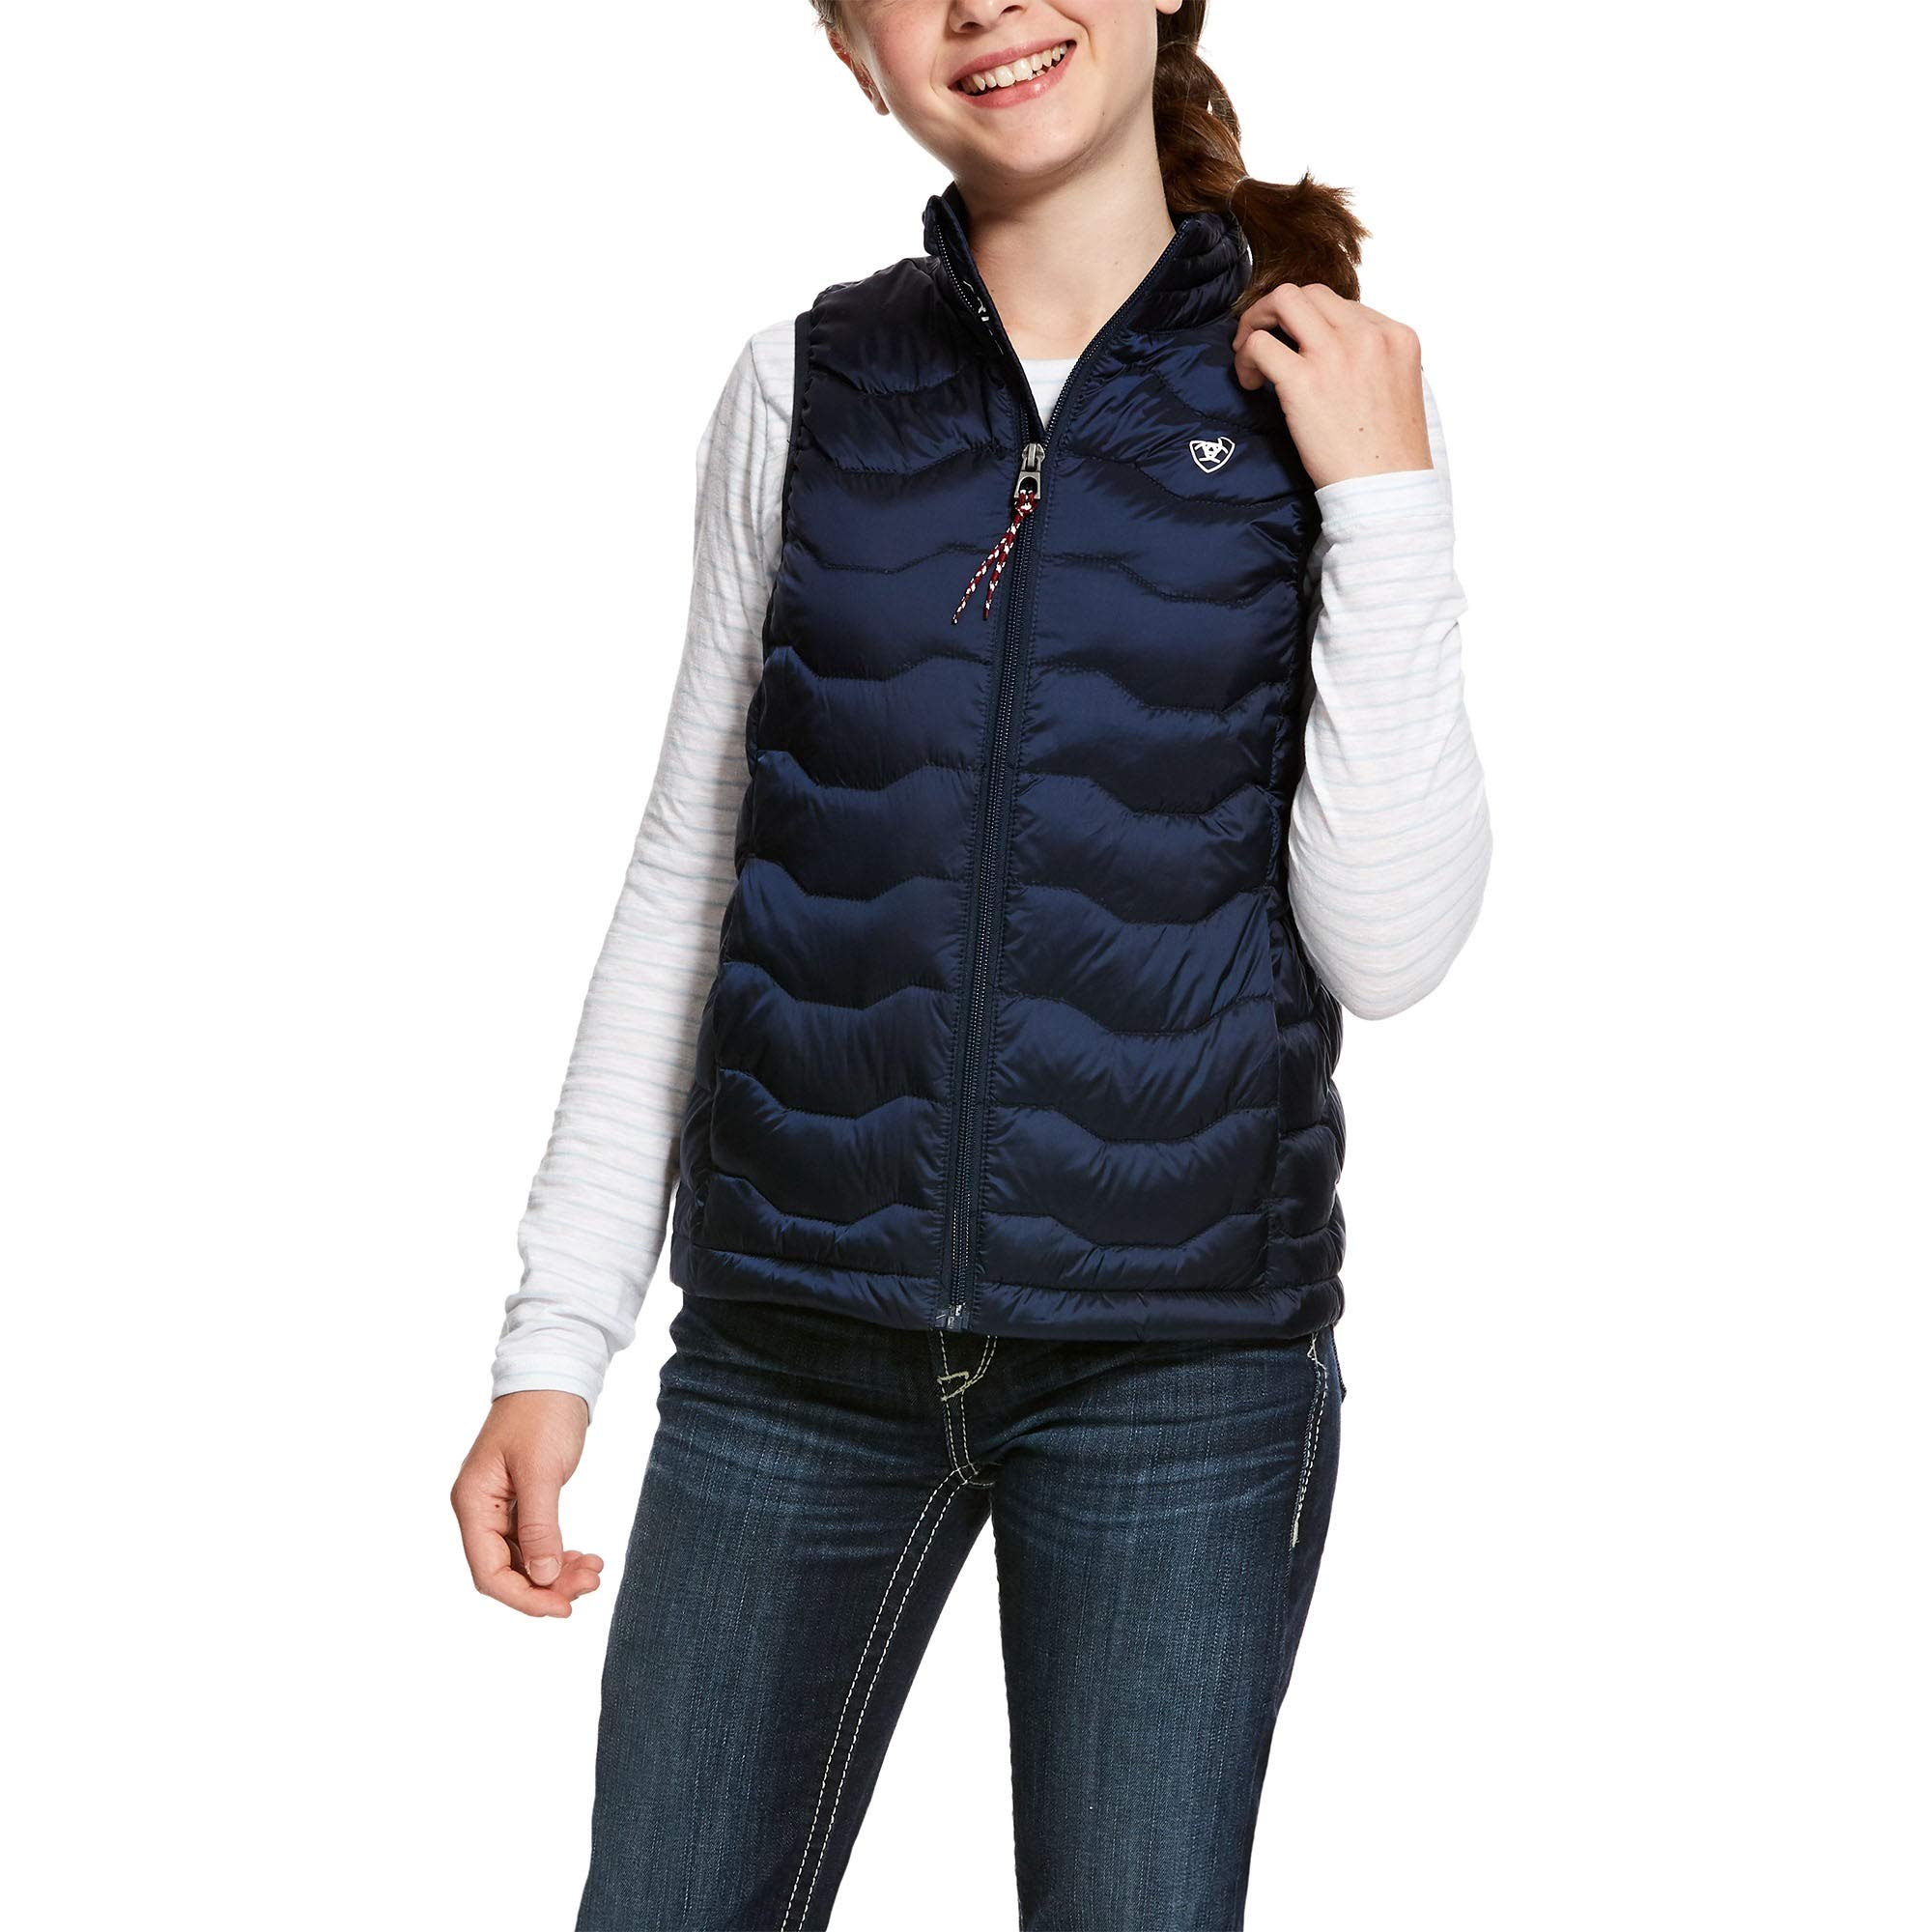 ARIAT Kids' Ideal 3.0 Down Vest - Navy (Small) by ARIAT